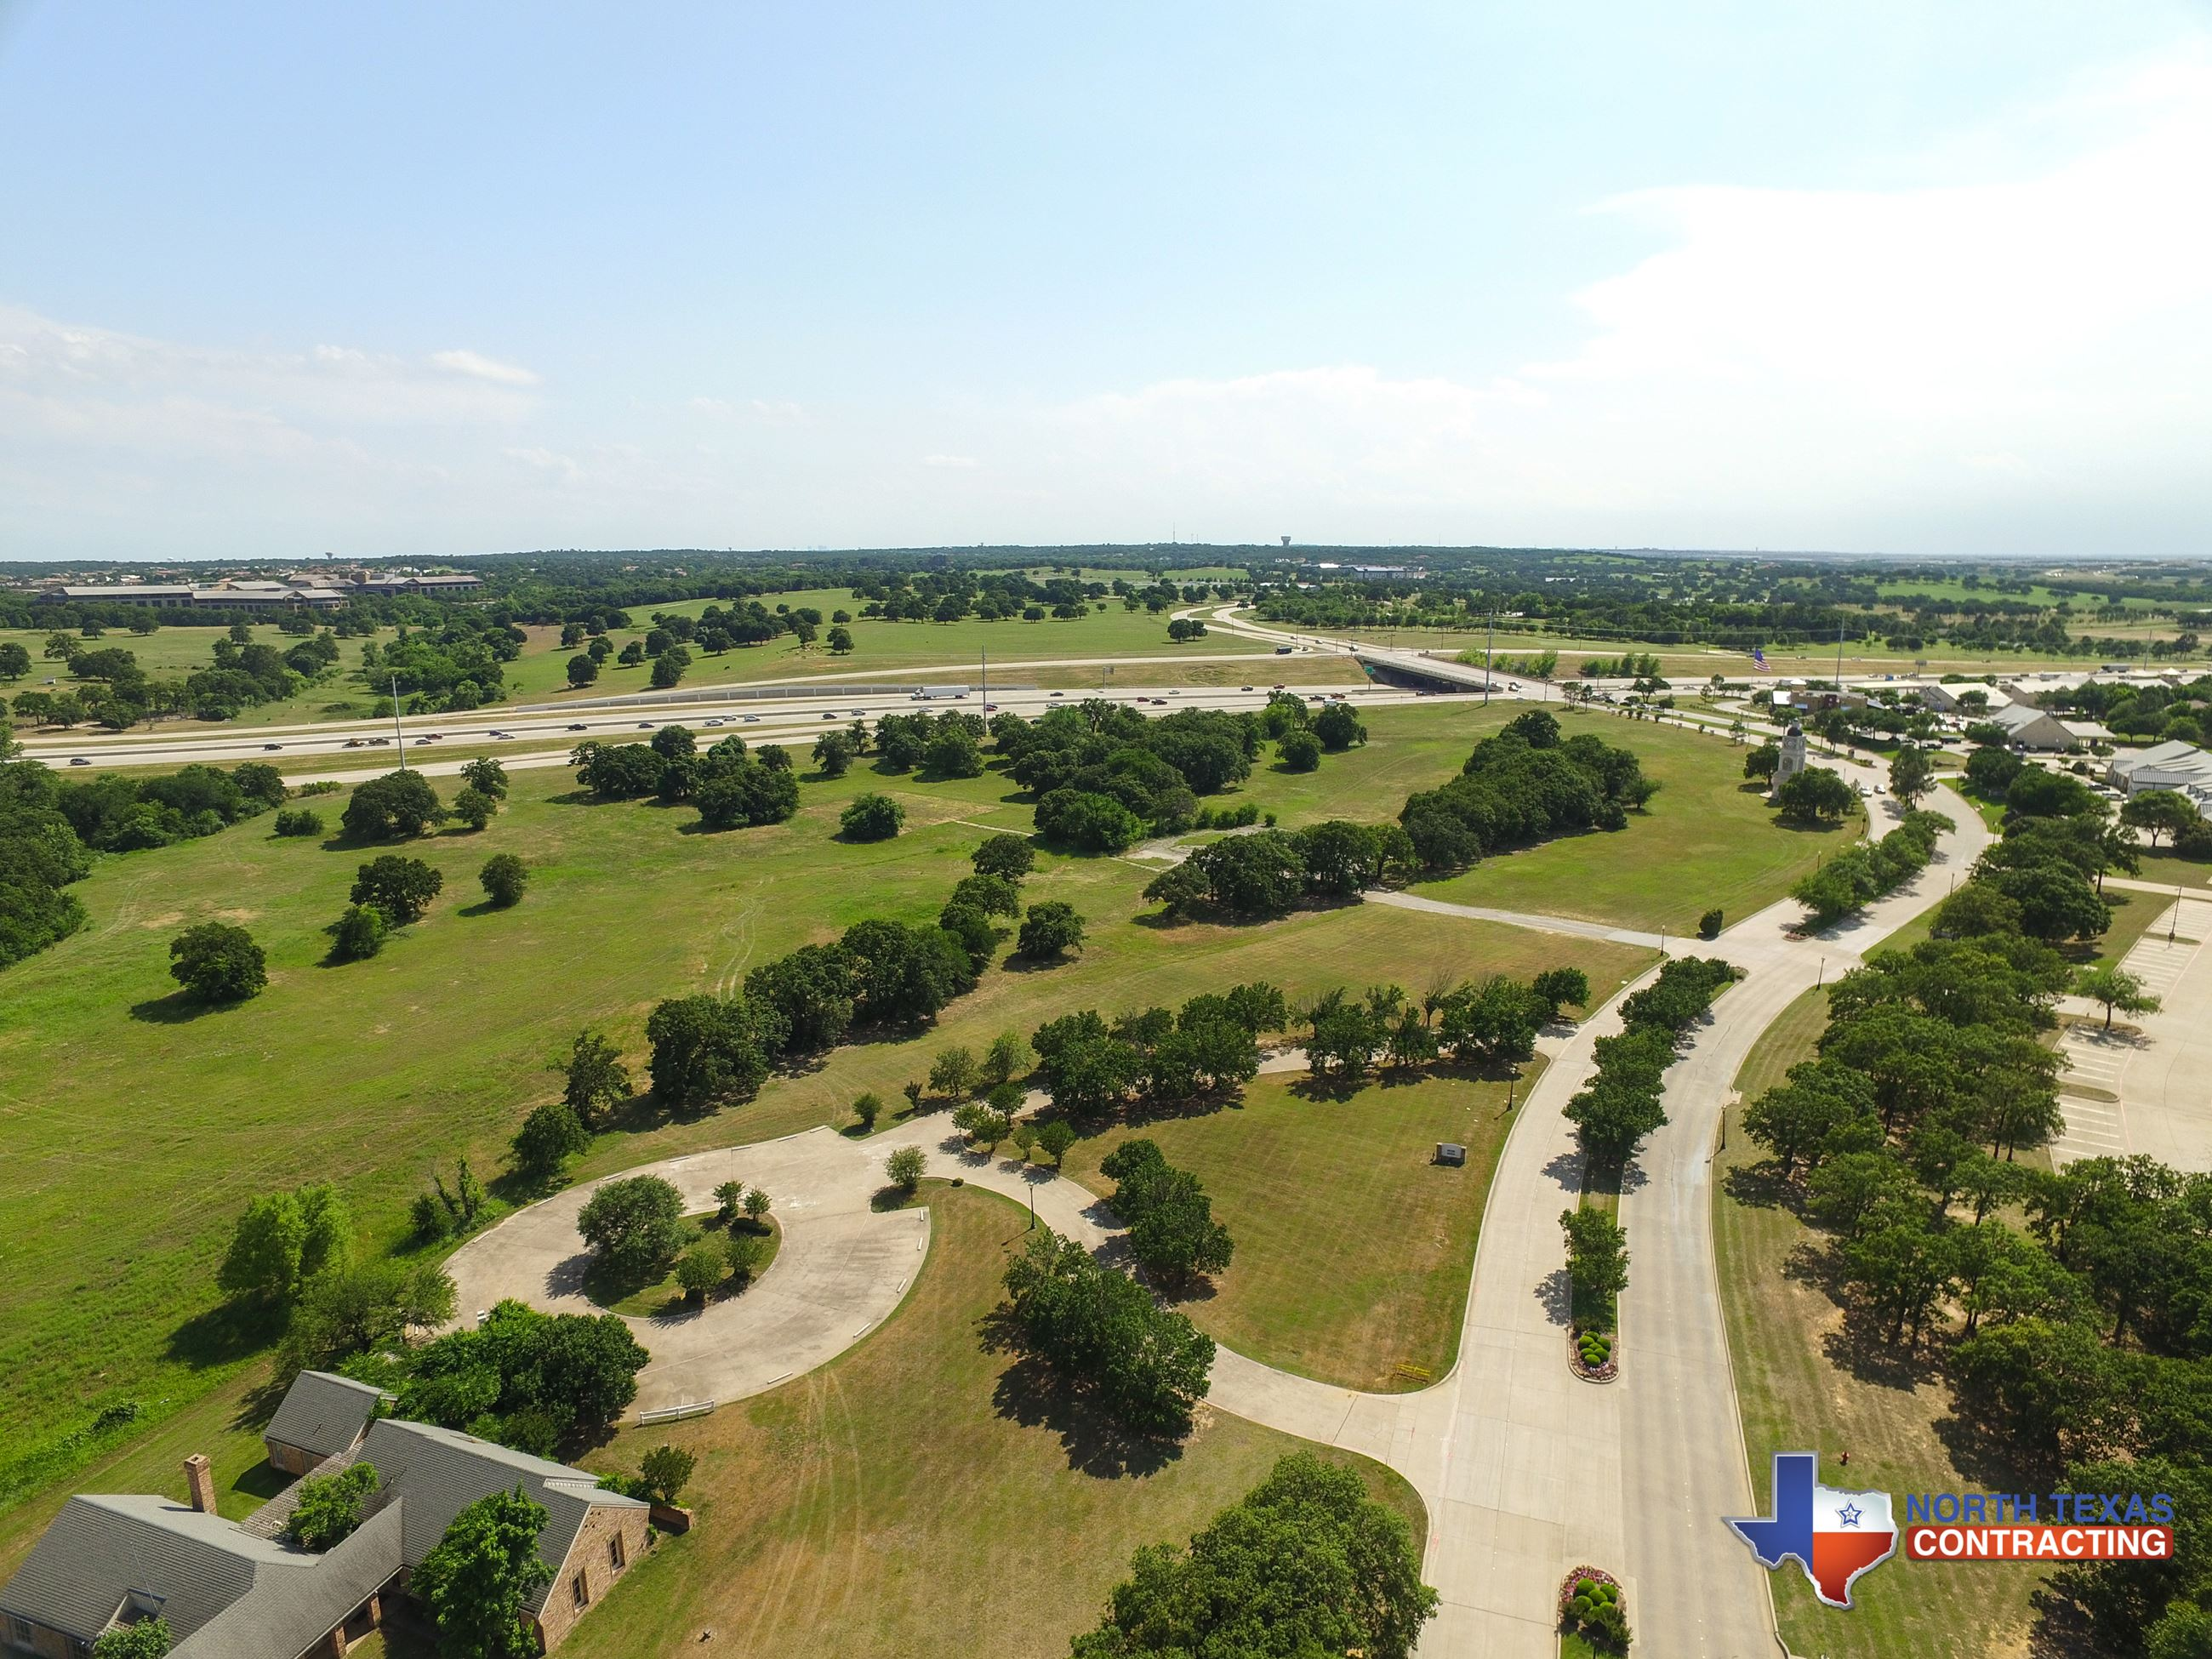 NTX Contracting - Aerial View of Where the Trophy Club Town Center Will Be - May 25